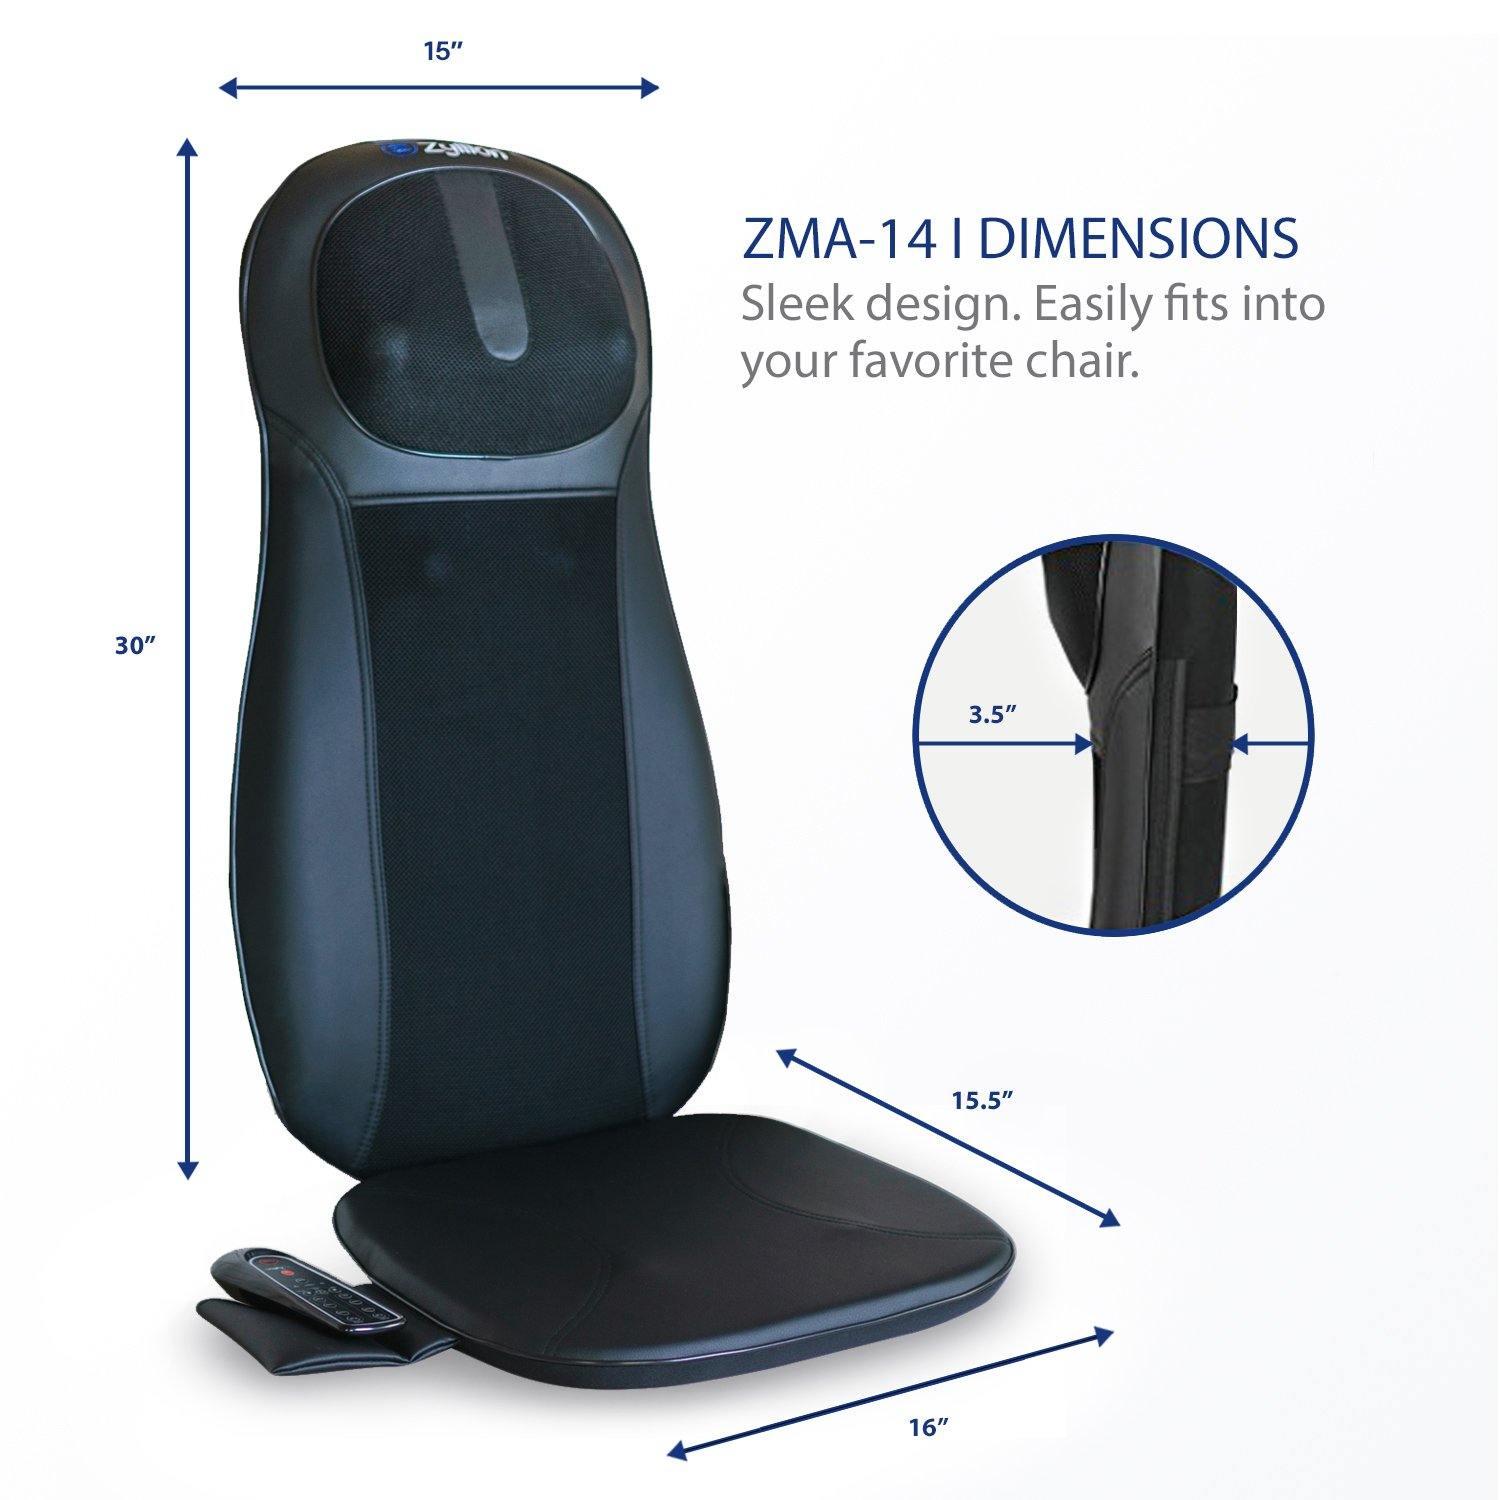 Zyllion ZMA14 Shiatsu Neck & Back Massager Cushion with Soothing Heat Function And 3 Massage Styles Rolling, Spot, and Kneading (Black) One Year Warranty by Zyllion (Image #5)